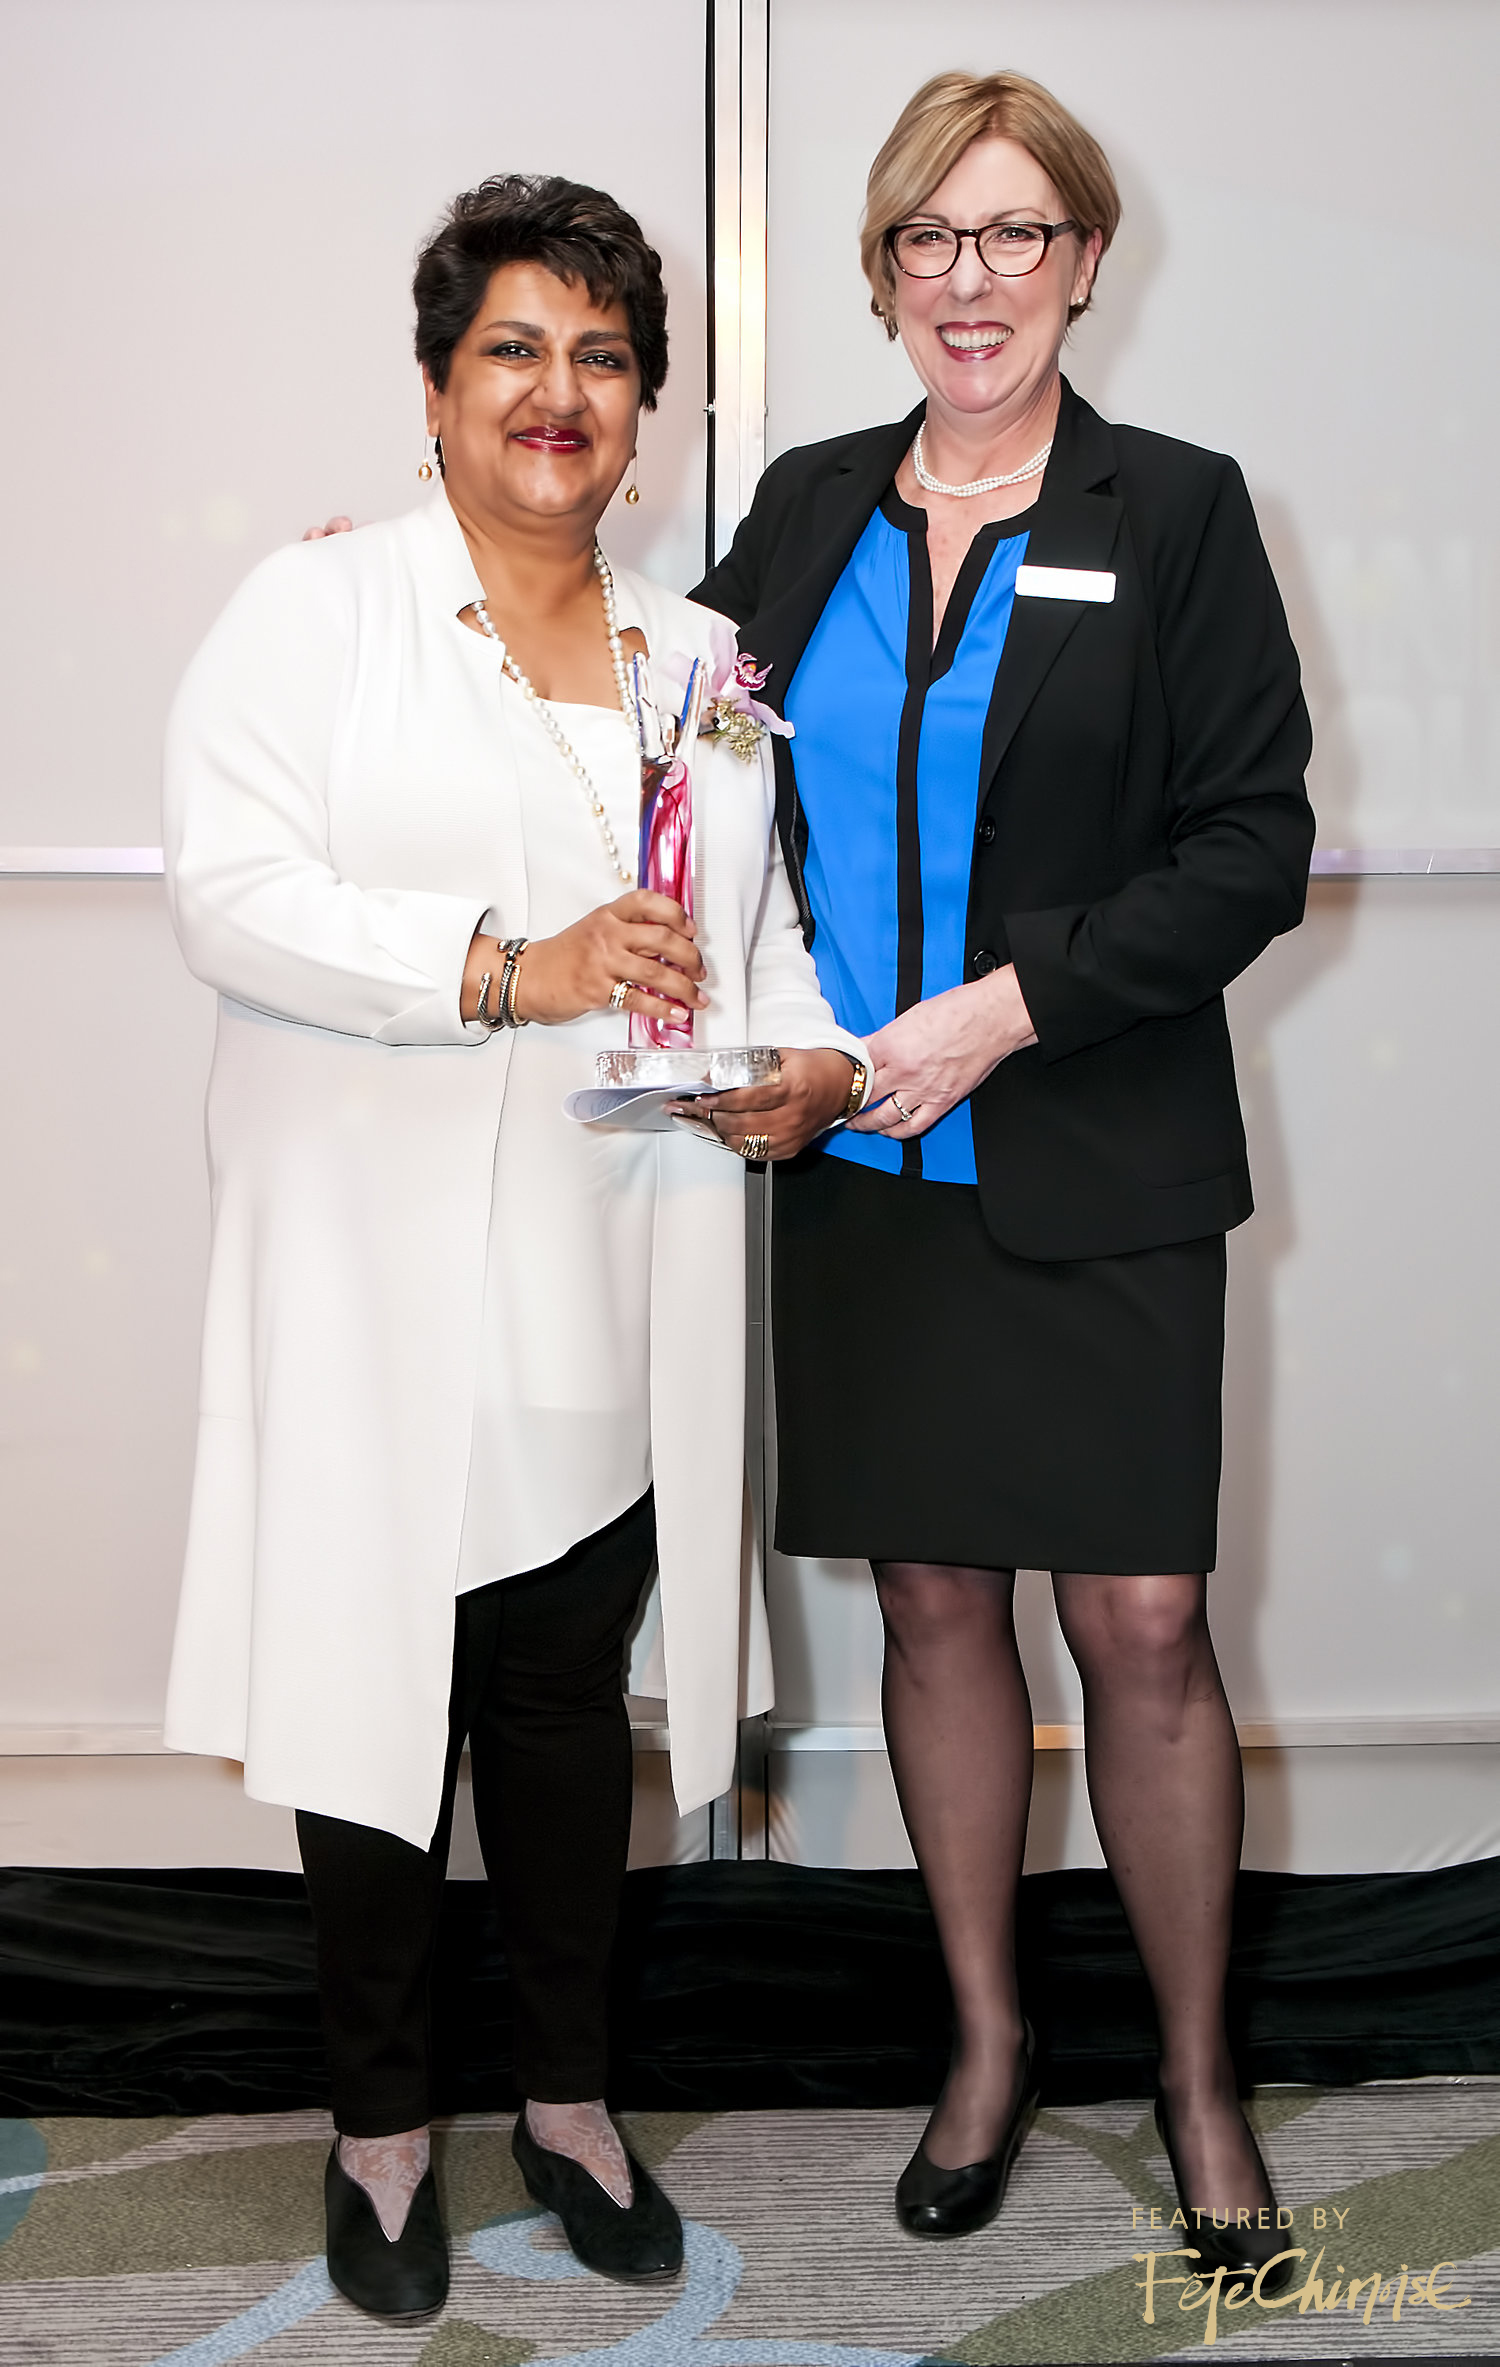 Karimah Es Sabar of the Centre for Drug Research and Development accepts her award from Janet Davie of TEC Canada.